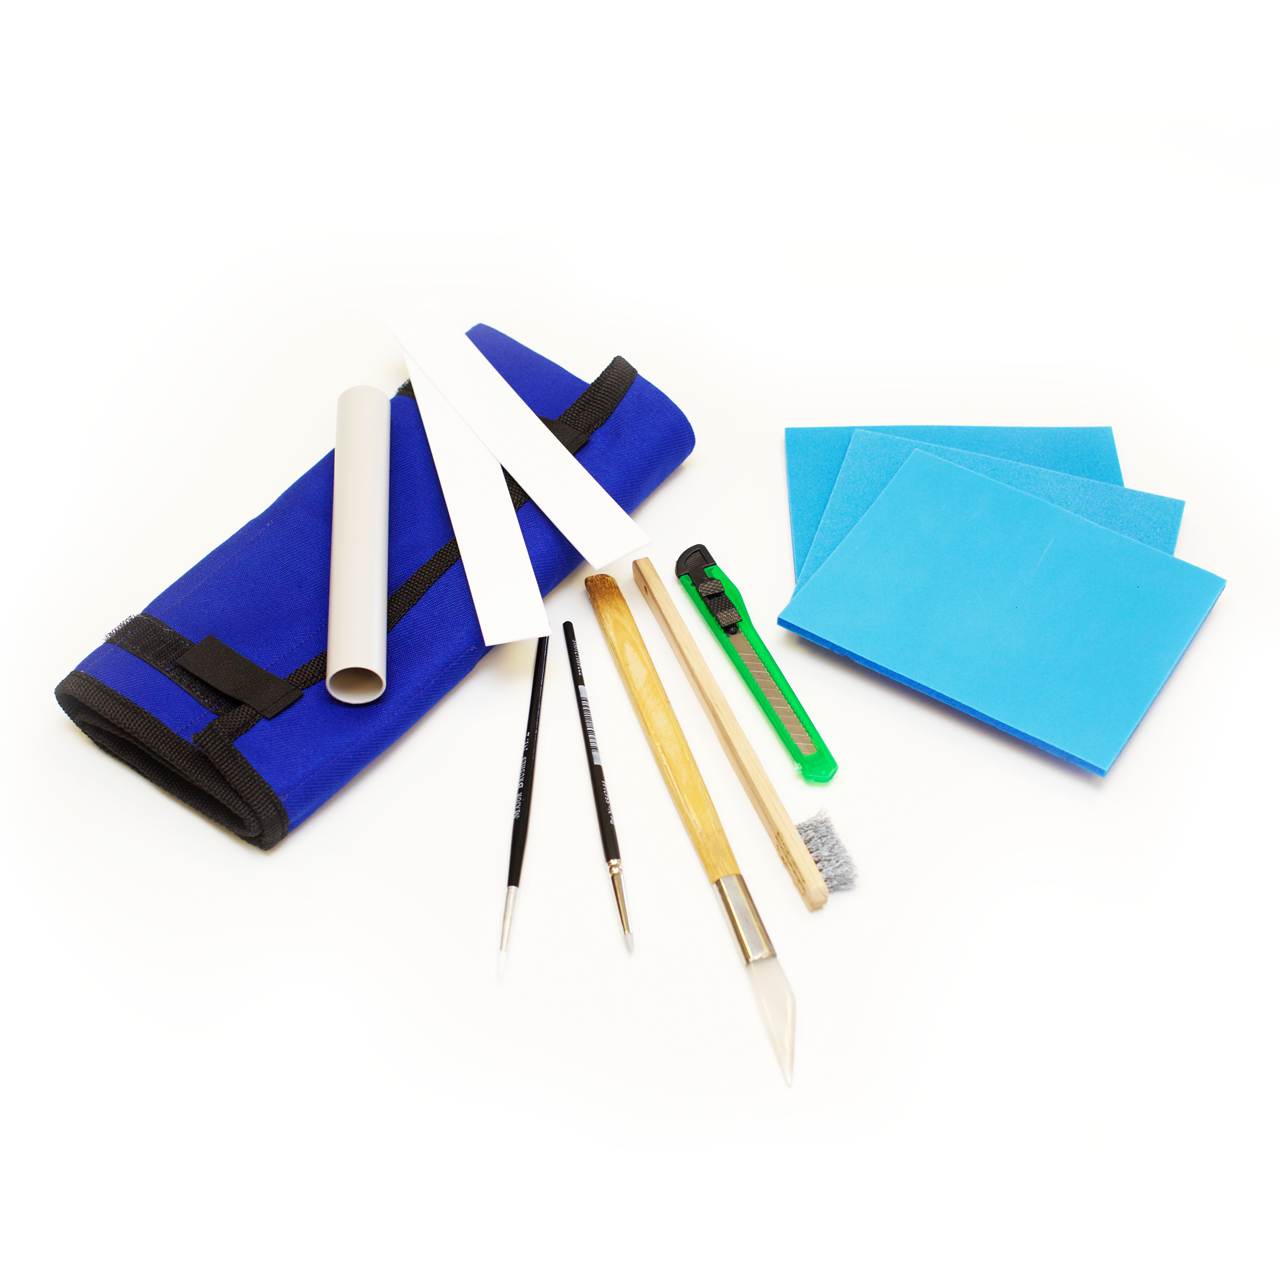 Starter Tool Kit Roll - with tools